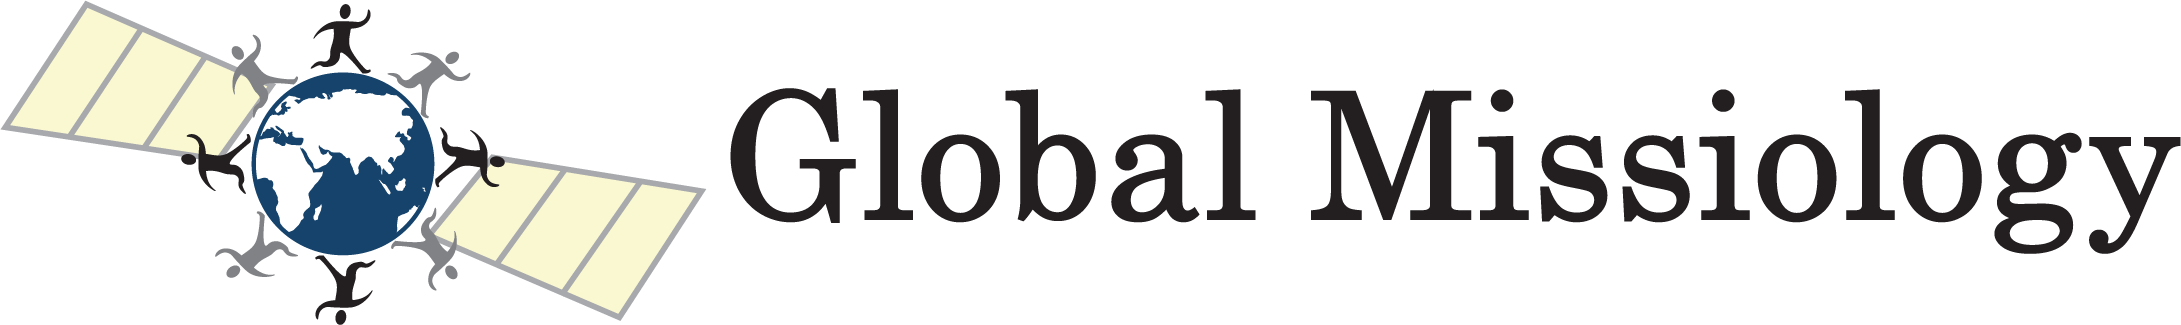 Global Missiology